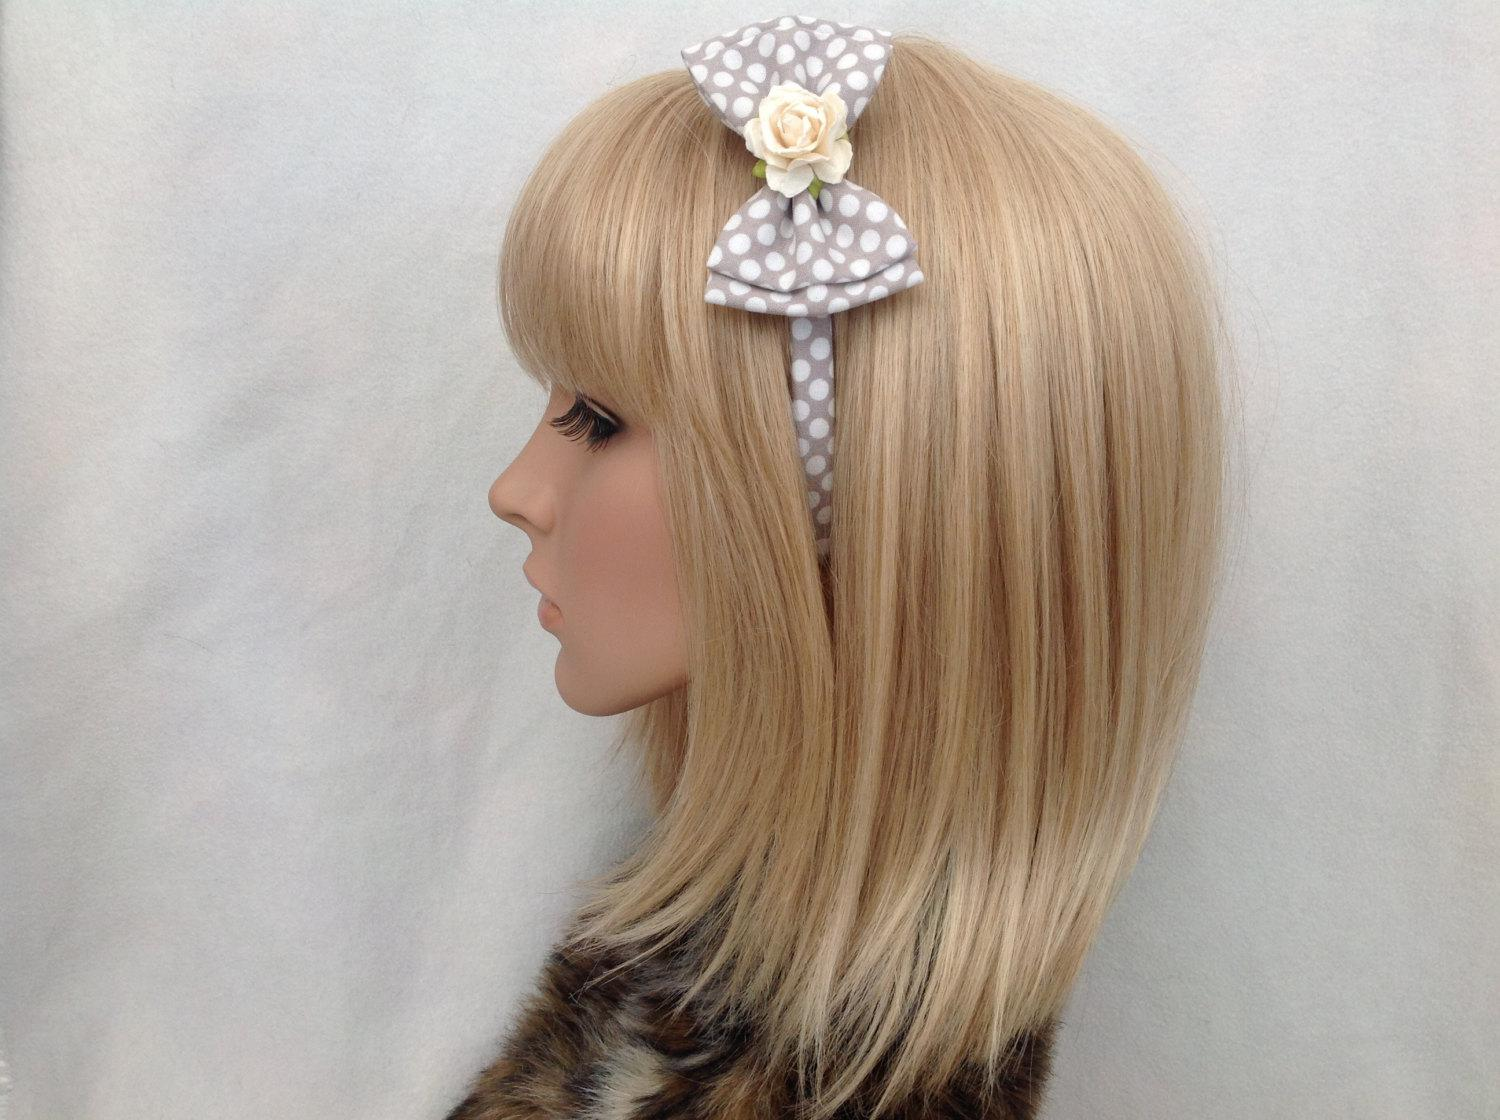 Grey & white polka dot rose headband